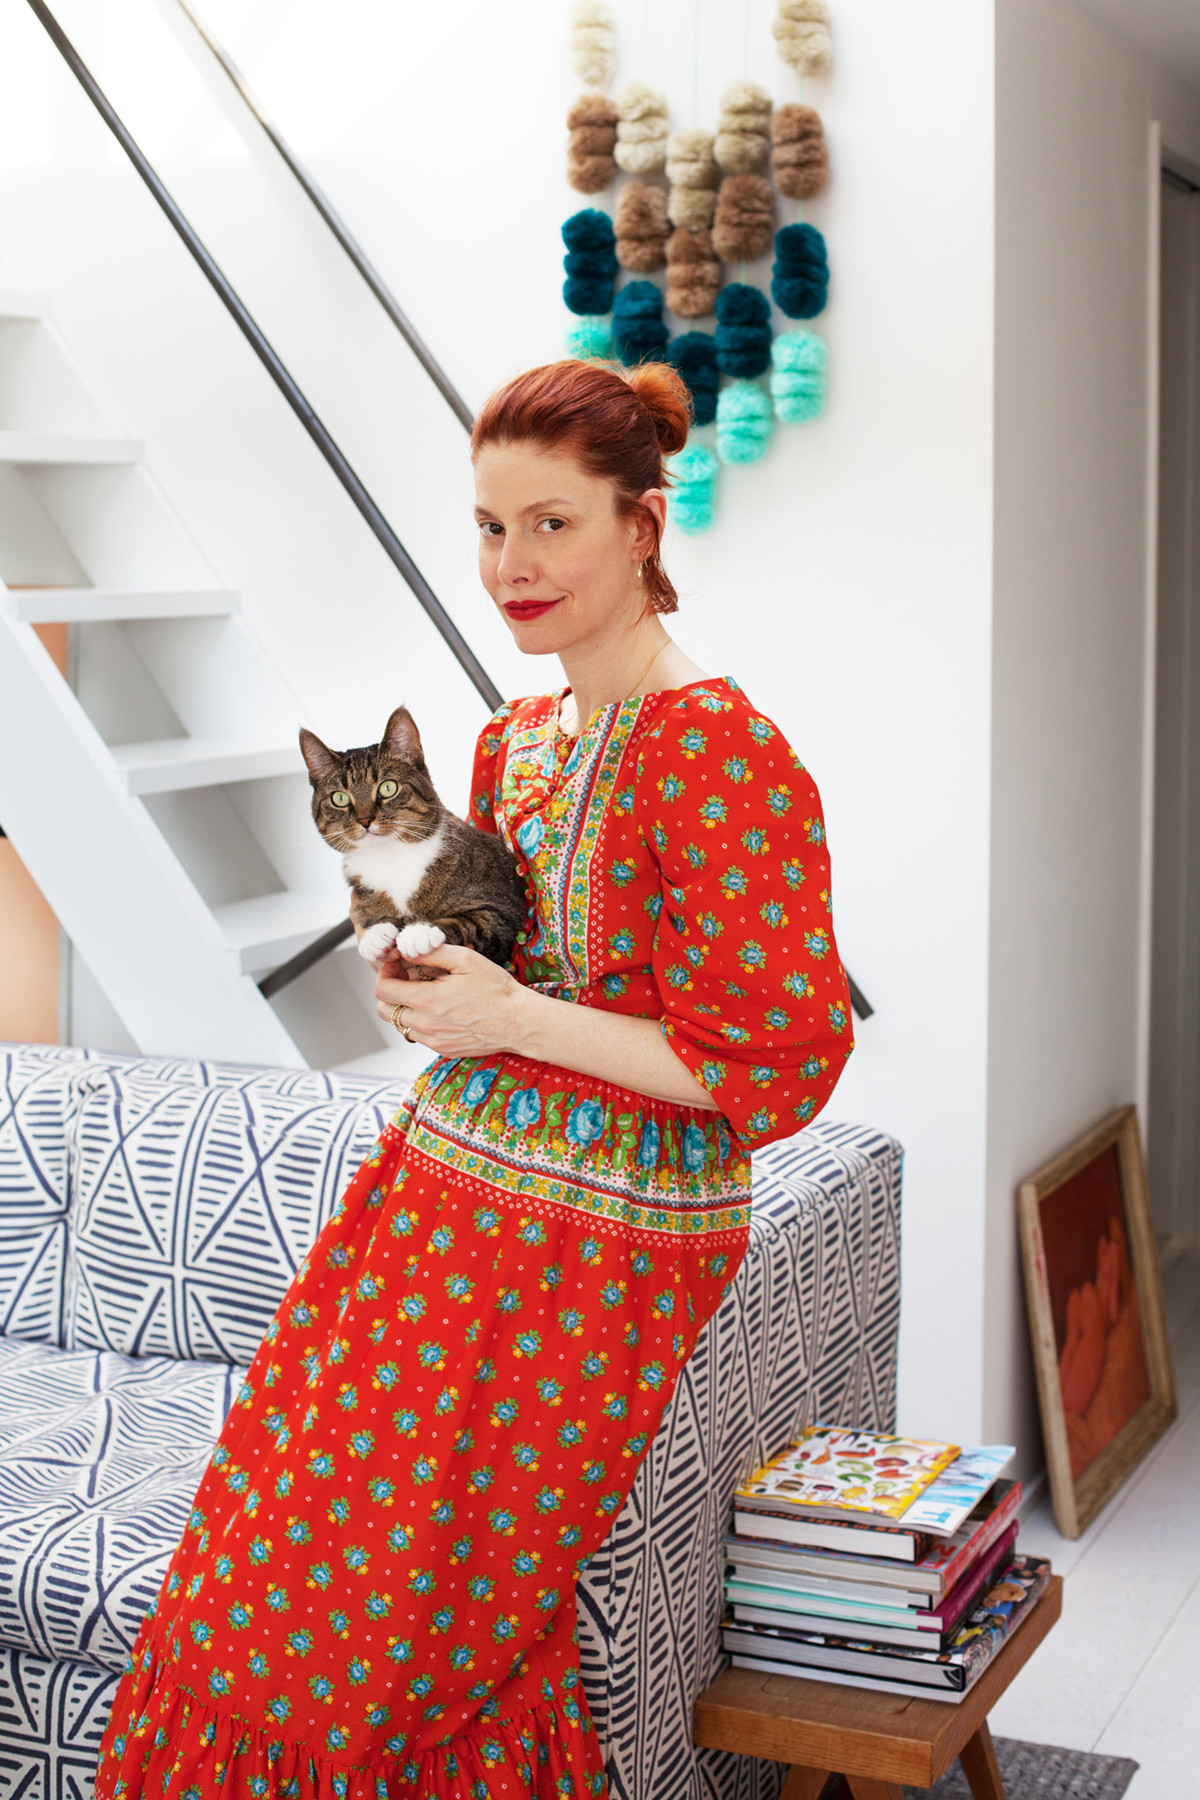 Refinery 29 co-founder Christene Barberich sits at home with her cat Phoebe.